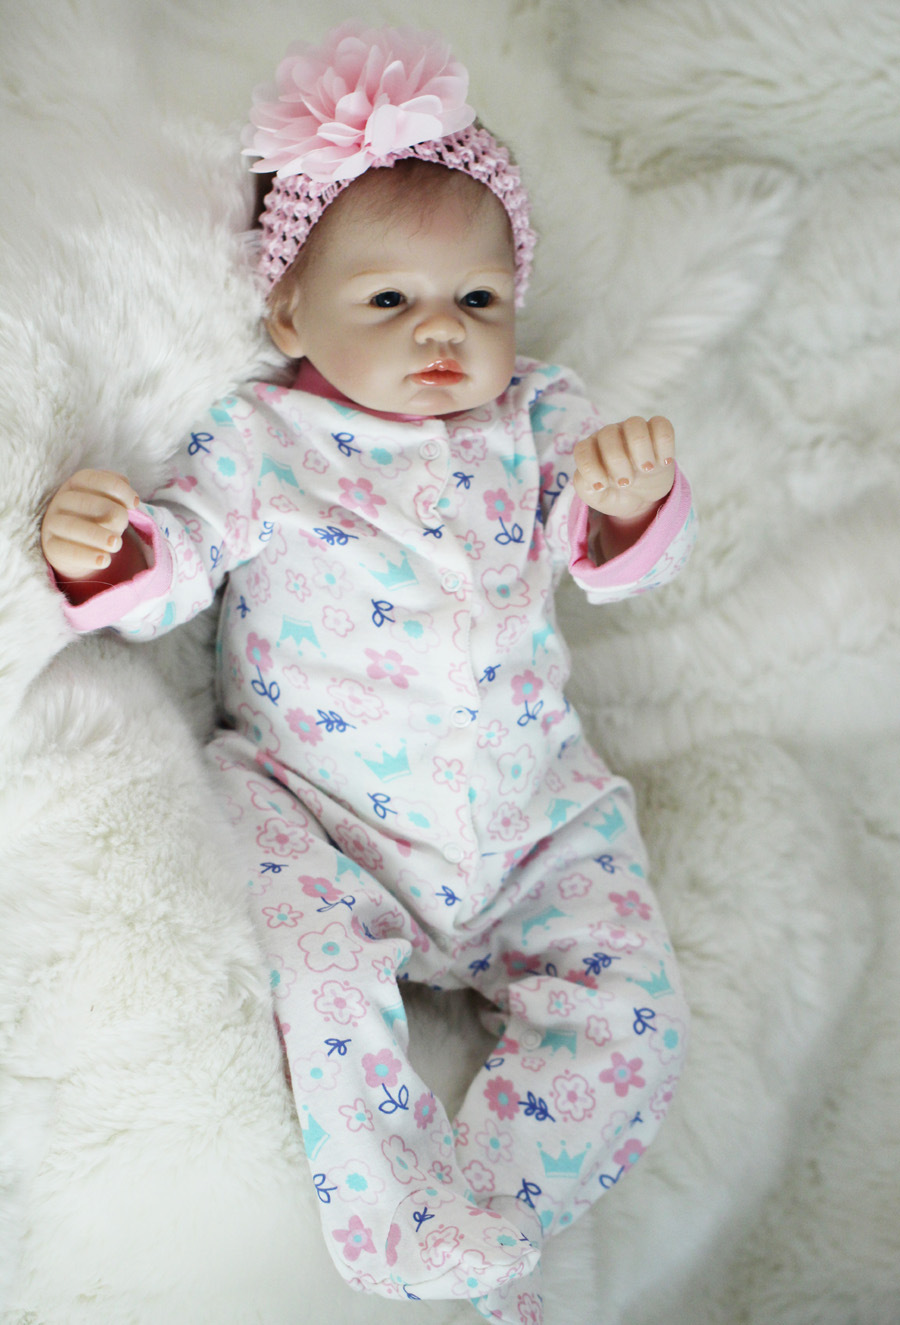 Silicone Reborn Baby Soft Body With Cotton 22'' Npk Realistic Doll Reborn Babies Cute 55 Cm Bebe Growth Partner Cheaper Juguetes